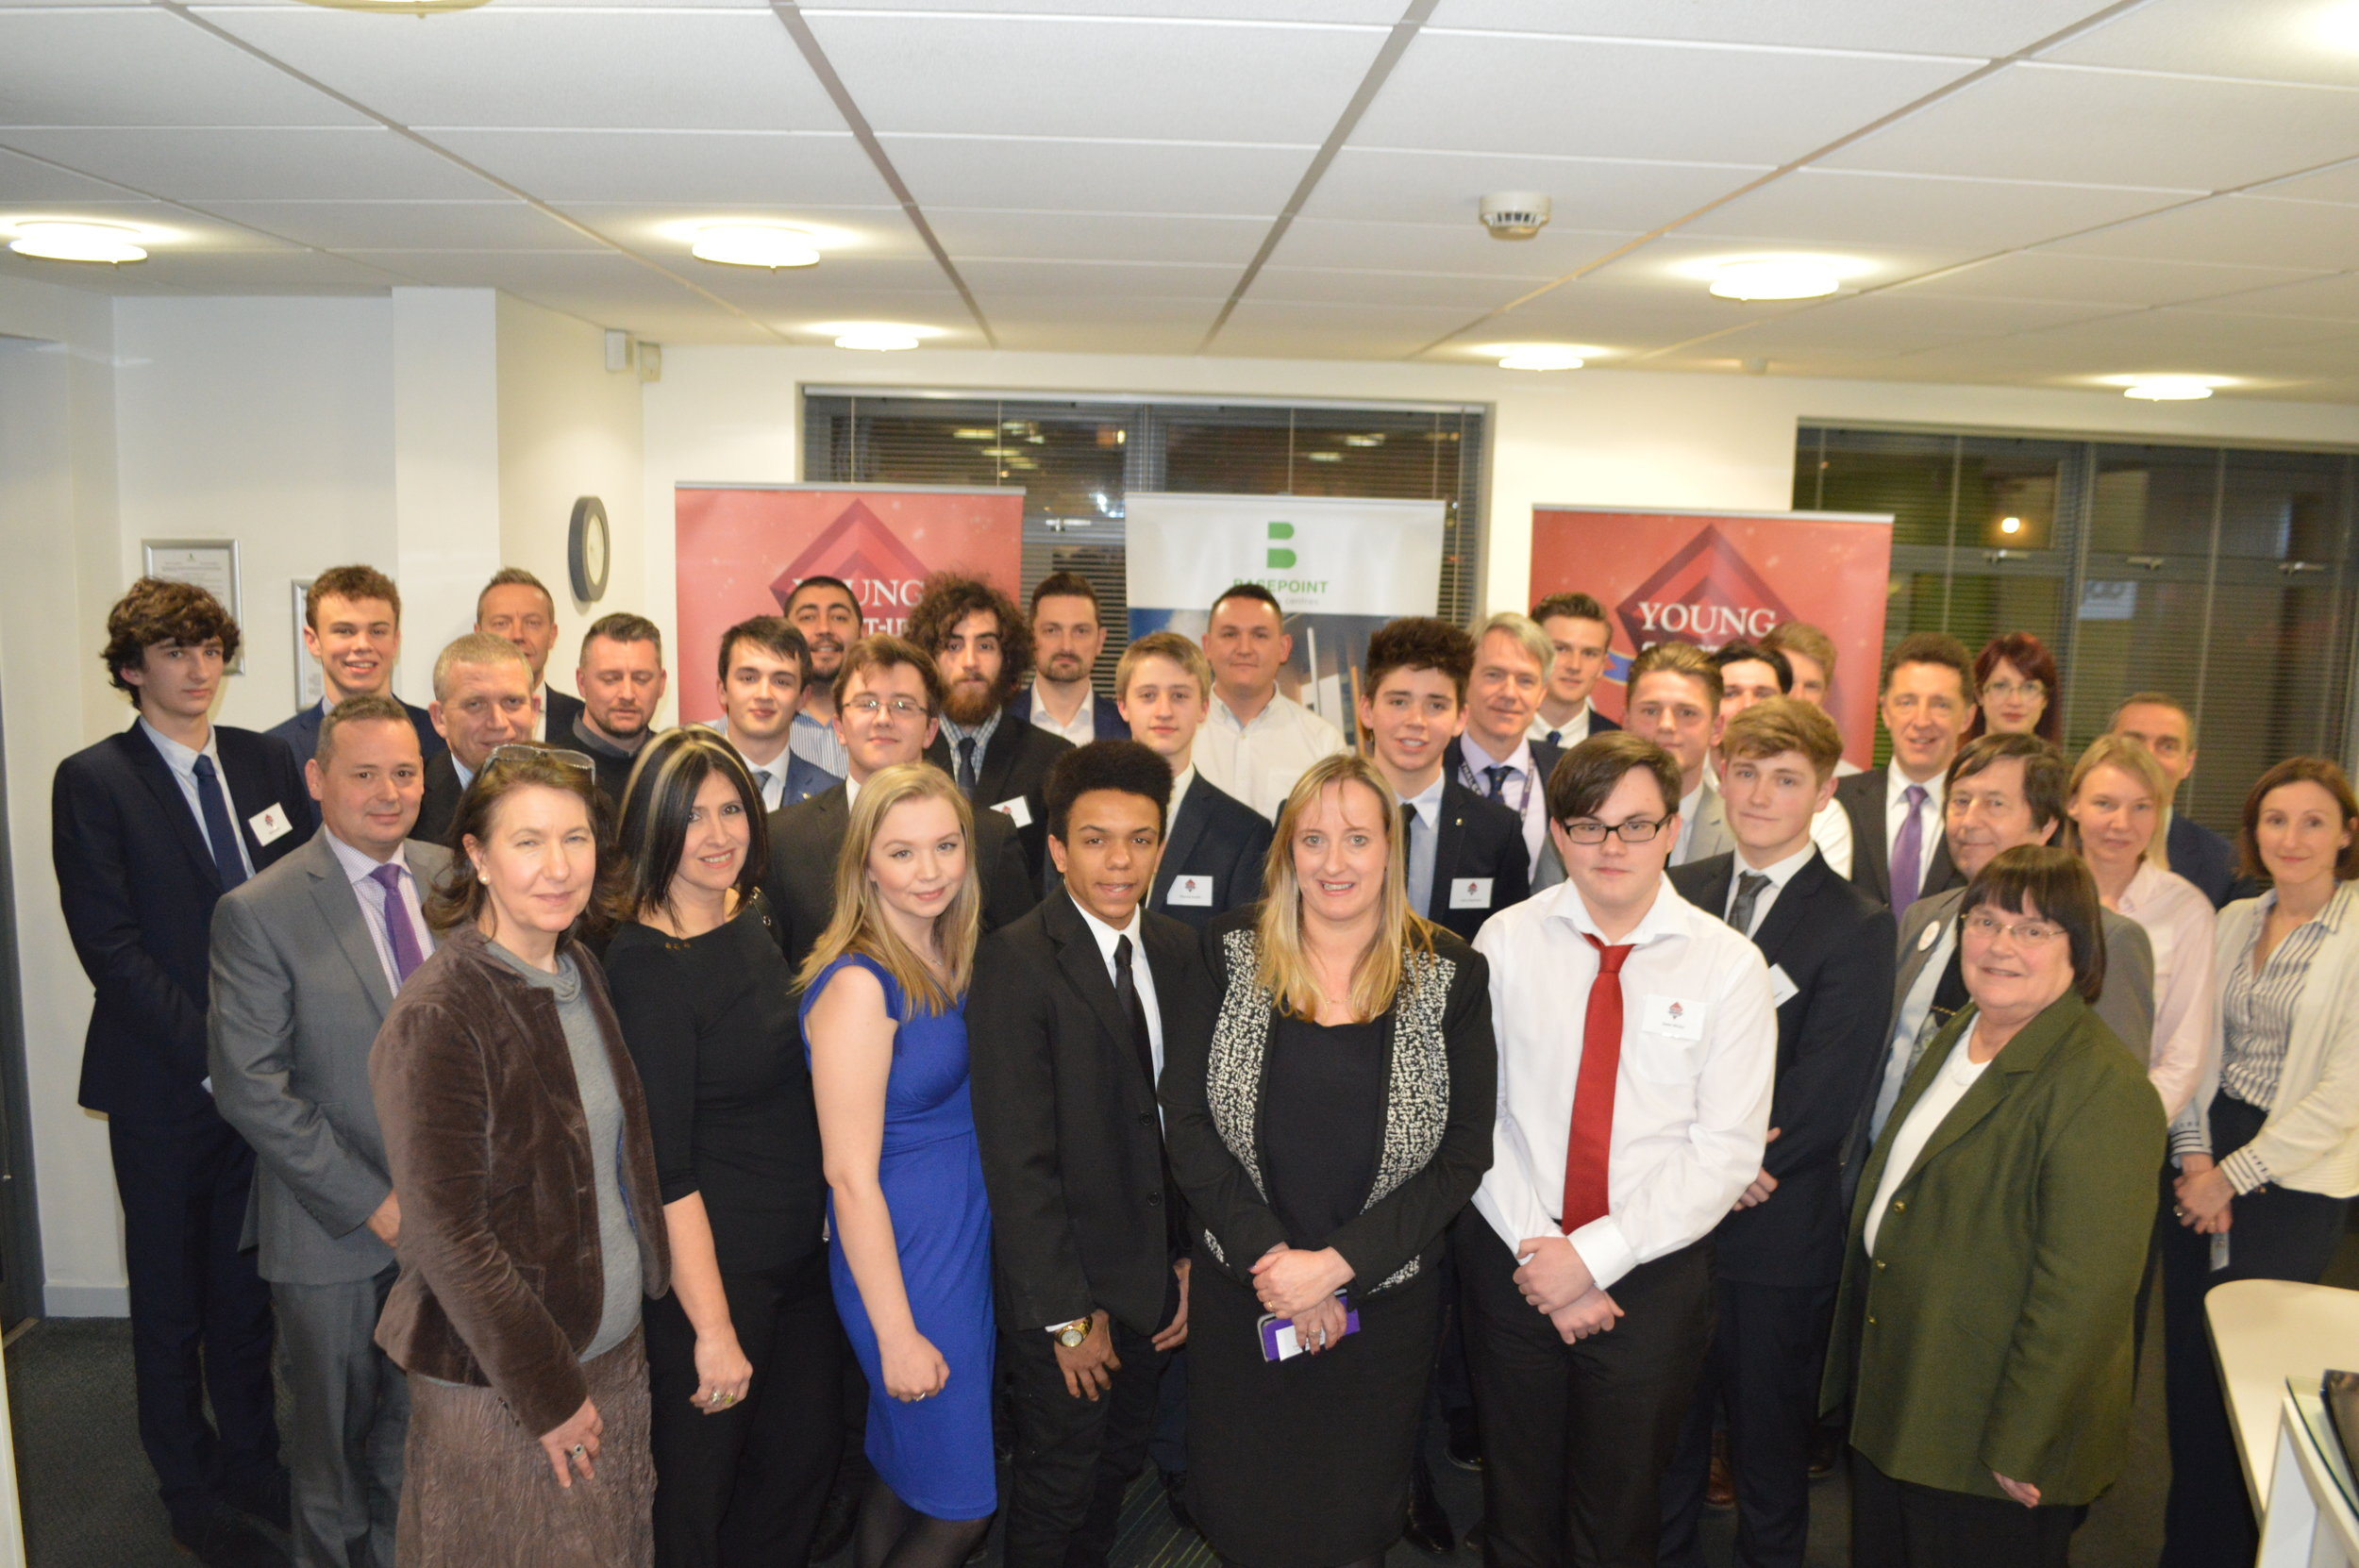 YST Gatwick Diamond candidates and sponsors at Basepoint Business Centre - Crawley